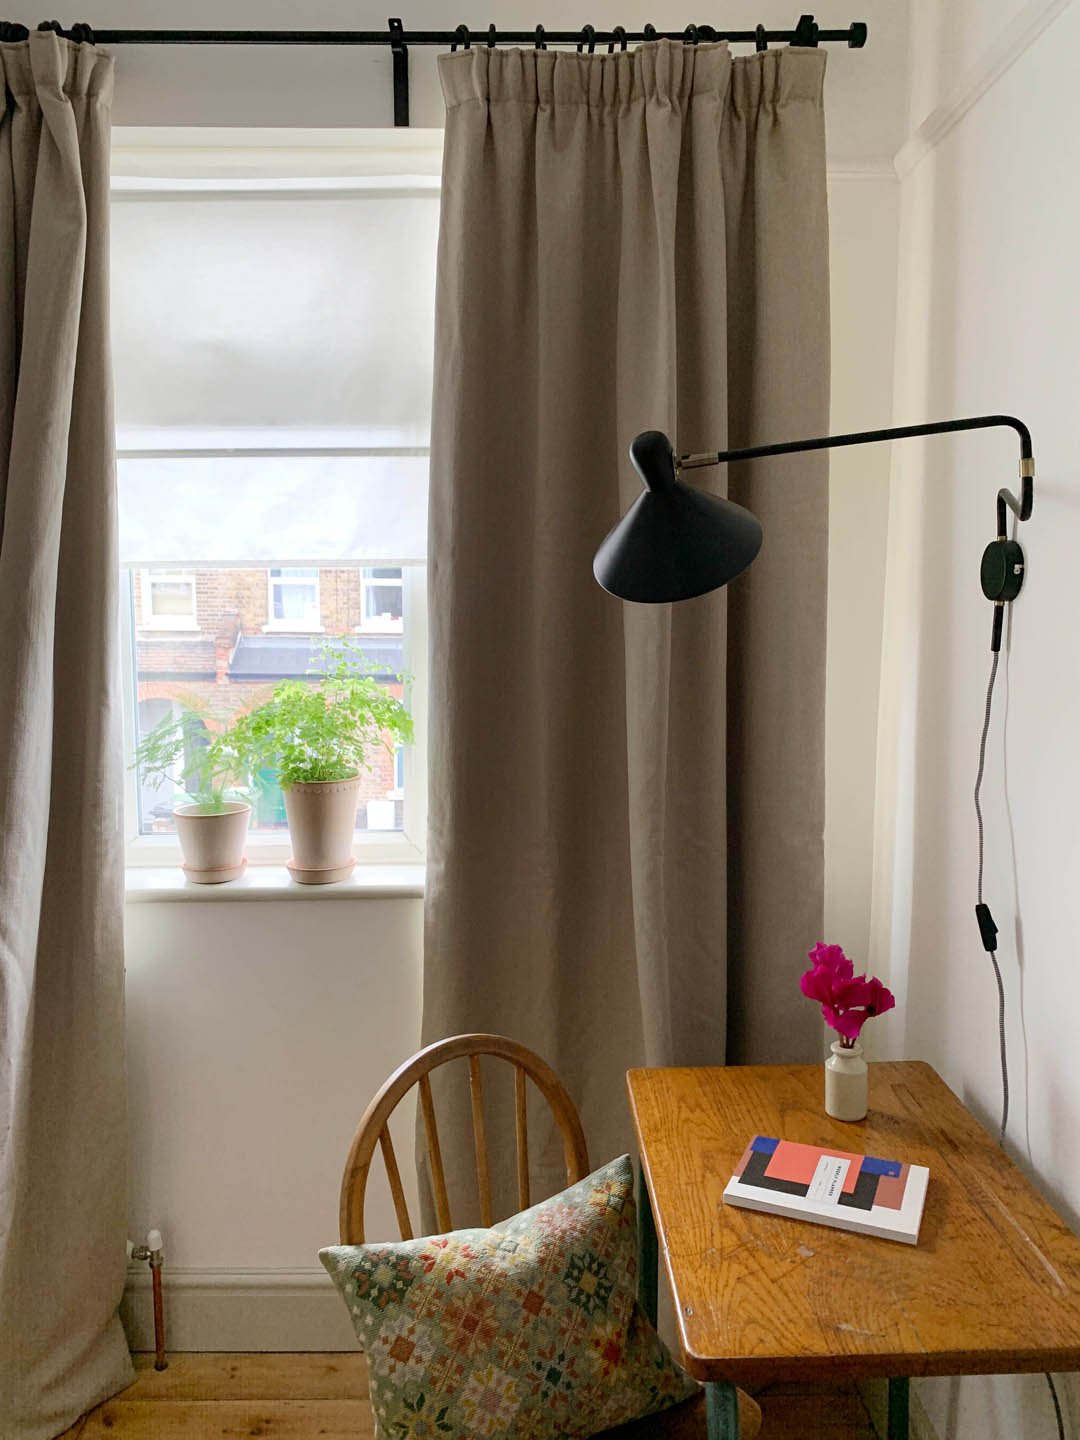 Why I Want Curtains In Every Room In My House Apartment Apothecary